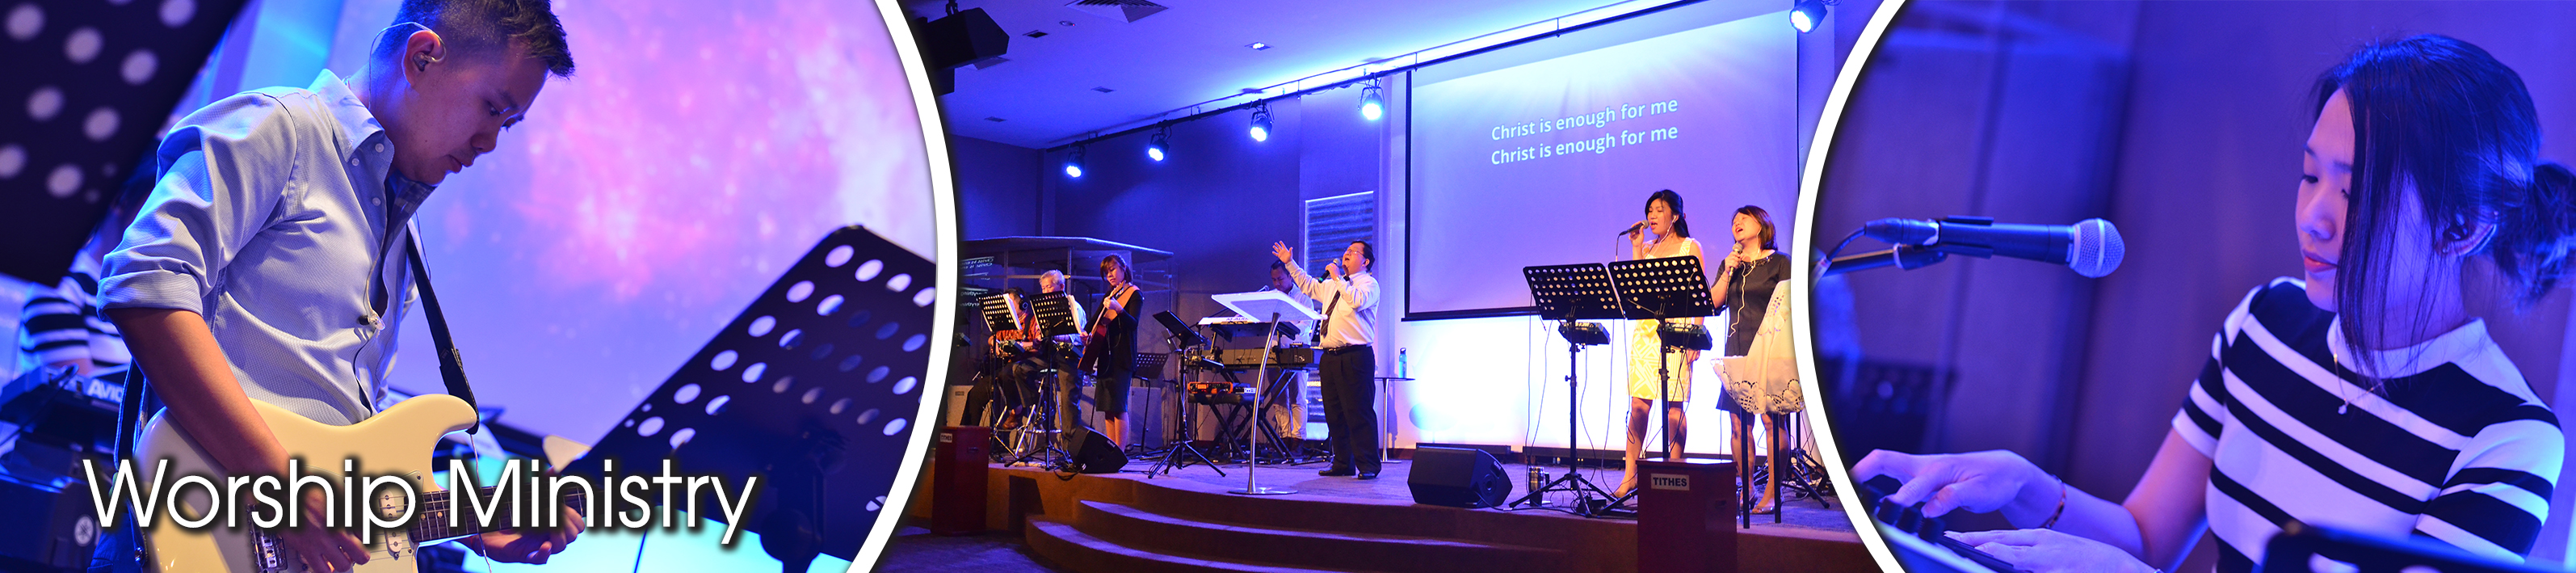 worship-website-banner